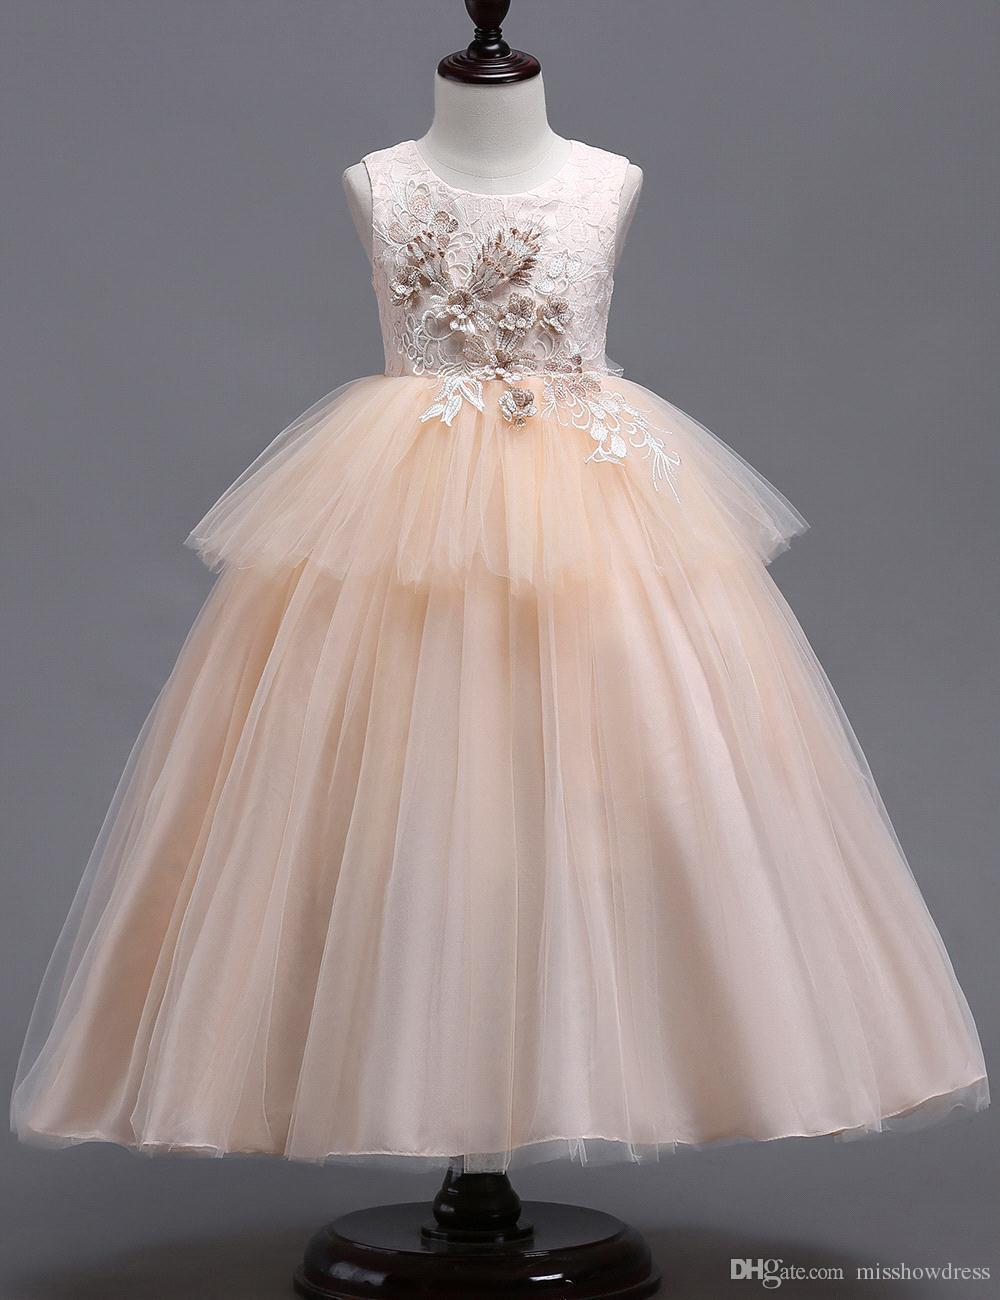 Lace Little Kids Flower Girl Dresses Princess Bateau Neck Tulle 3d Floral Layered Girls' Pageant Short Formal Wears for Wedding MC1625